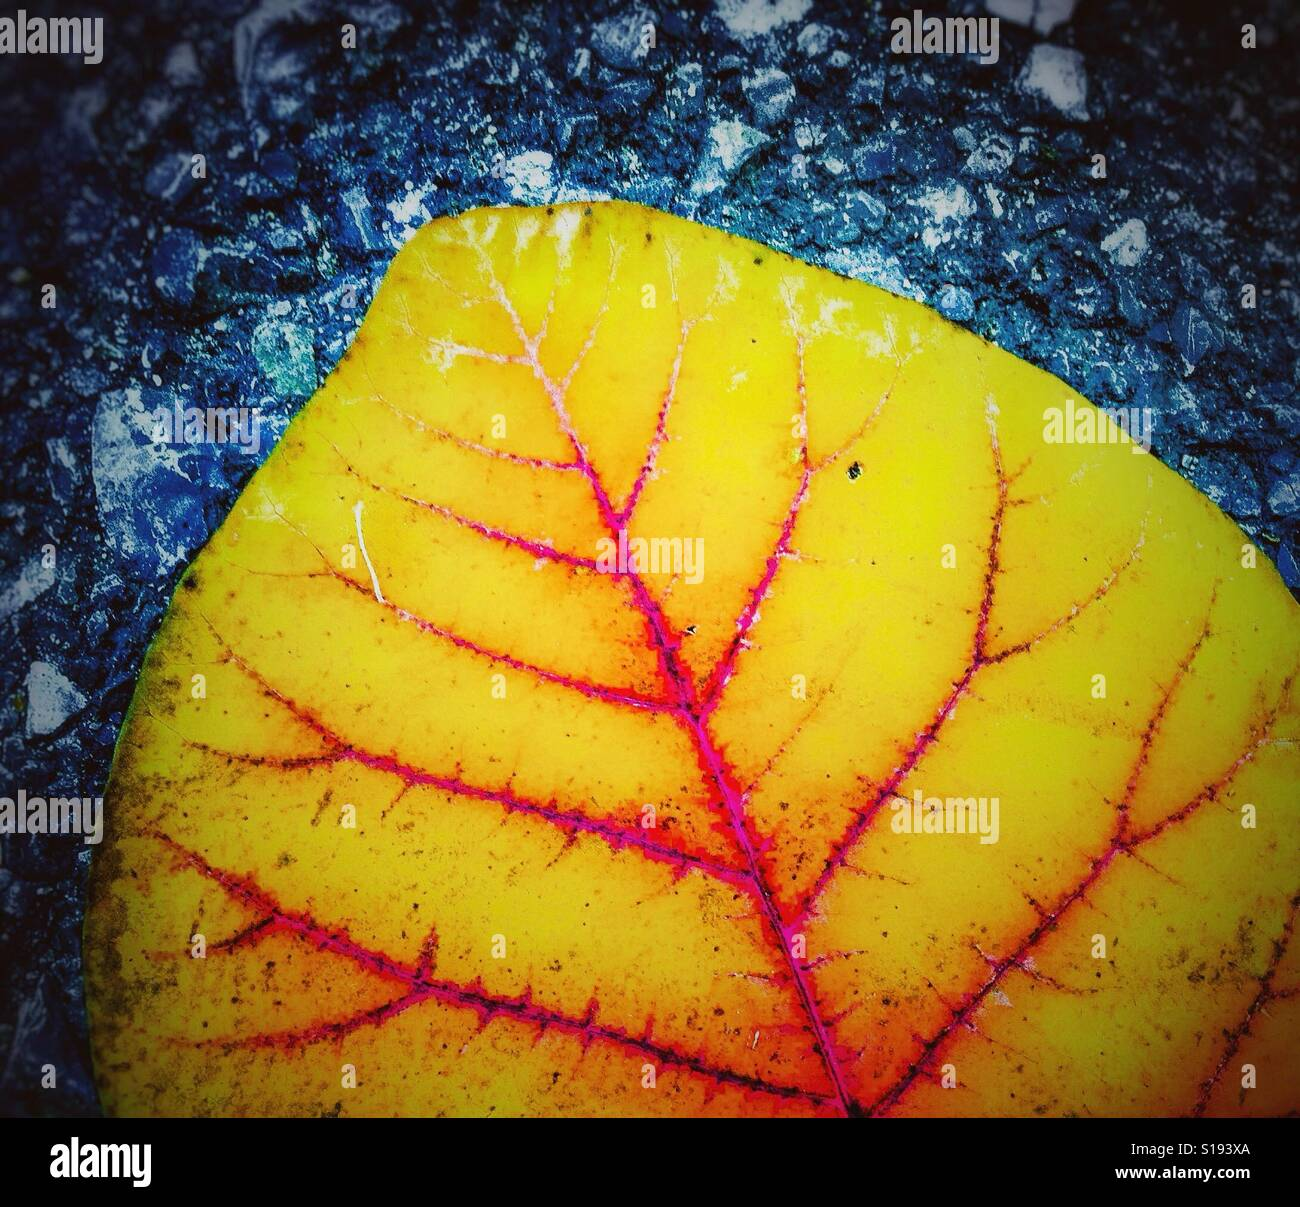 Colorful yellow leaf on asphalt Stock Photo